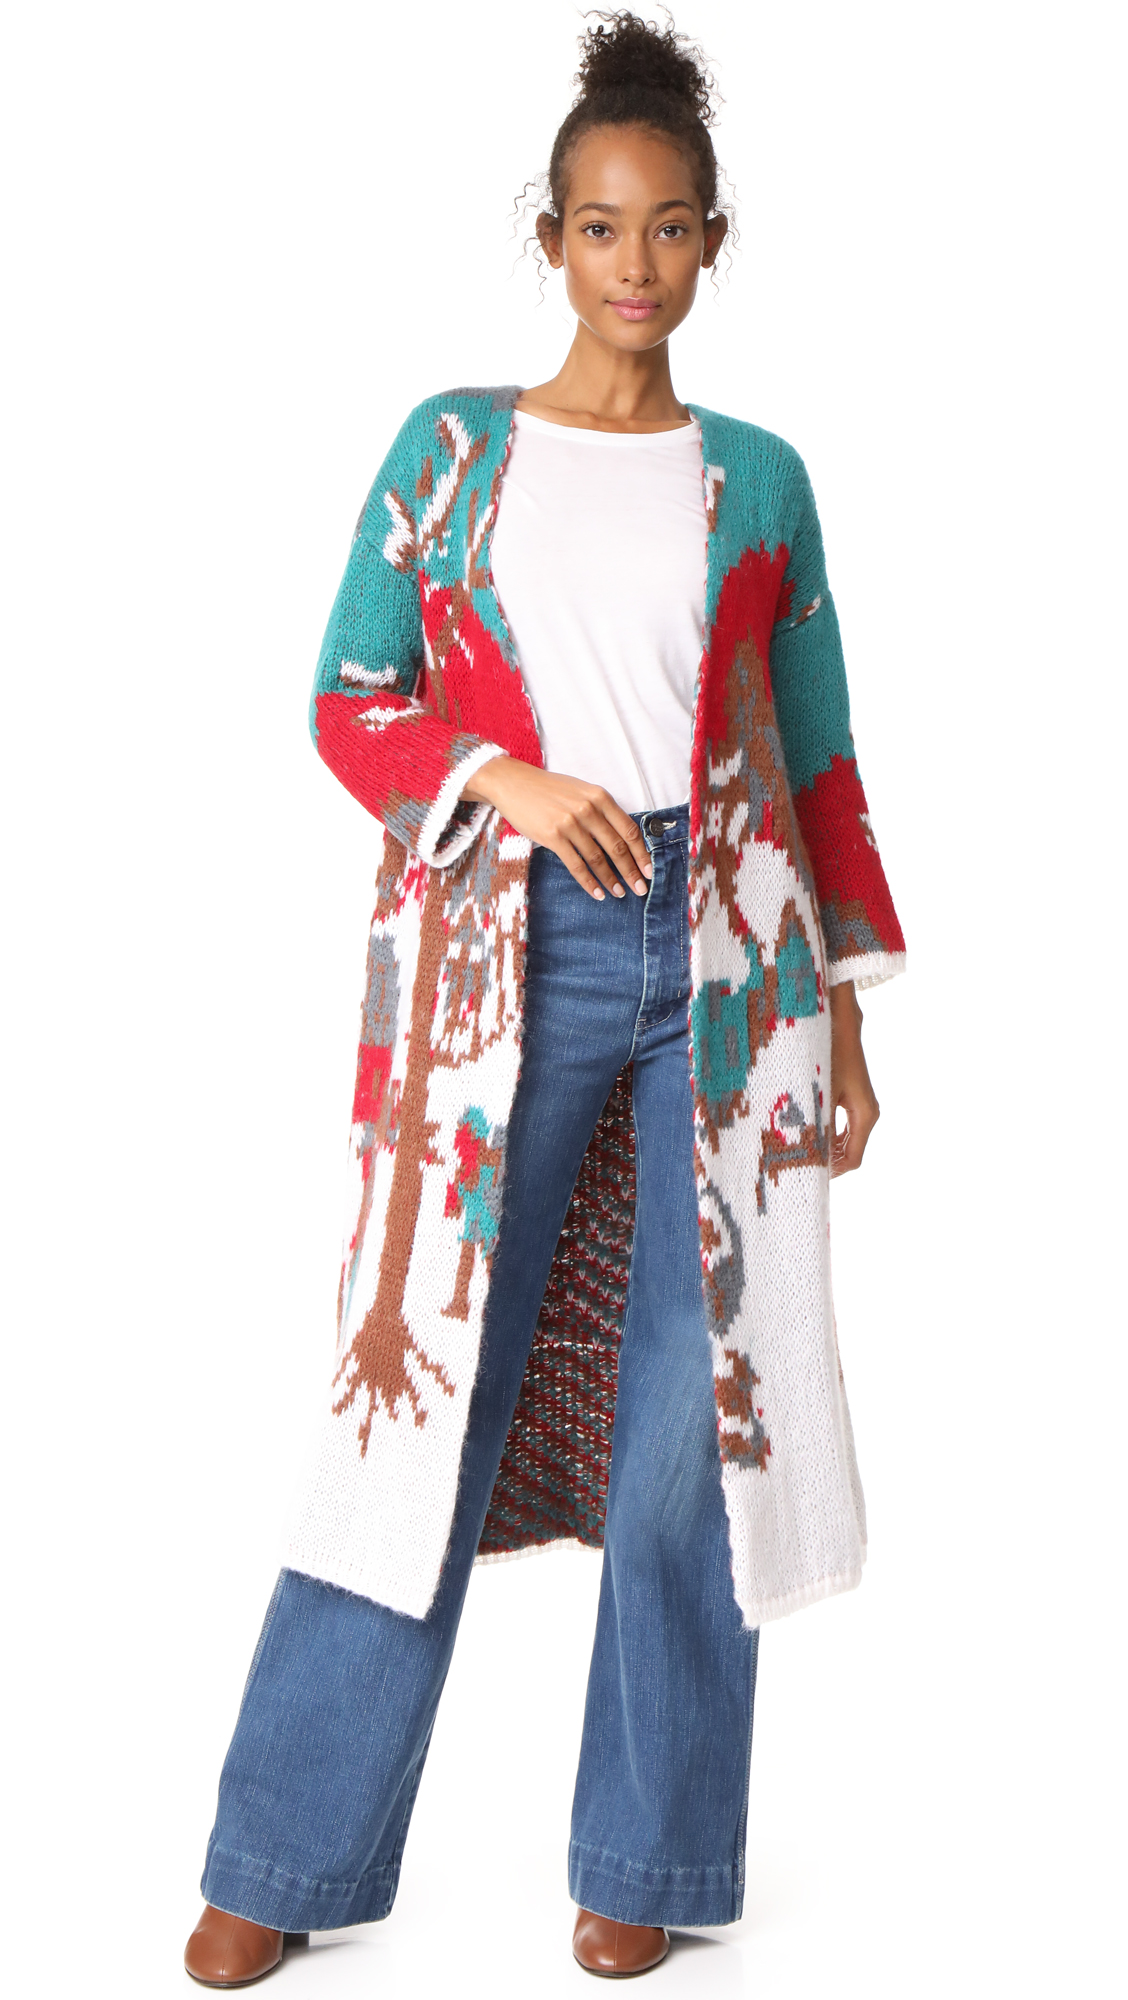 Stella Jean Intarsia Long Cardigan Coat - Multi